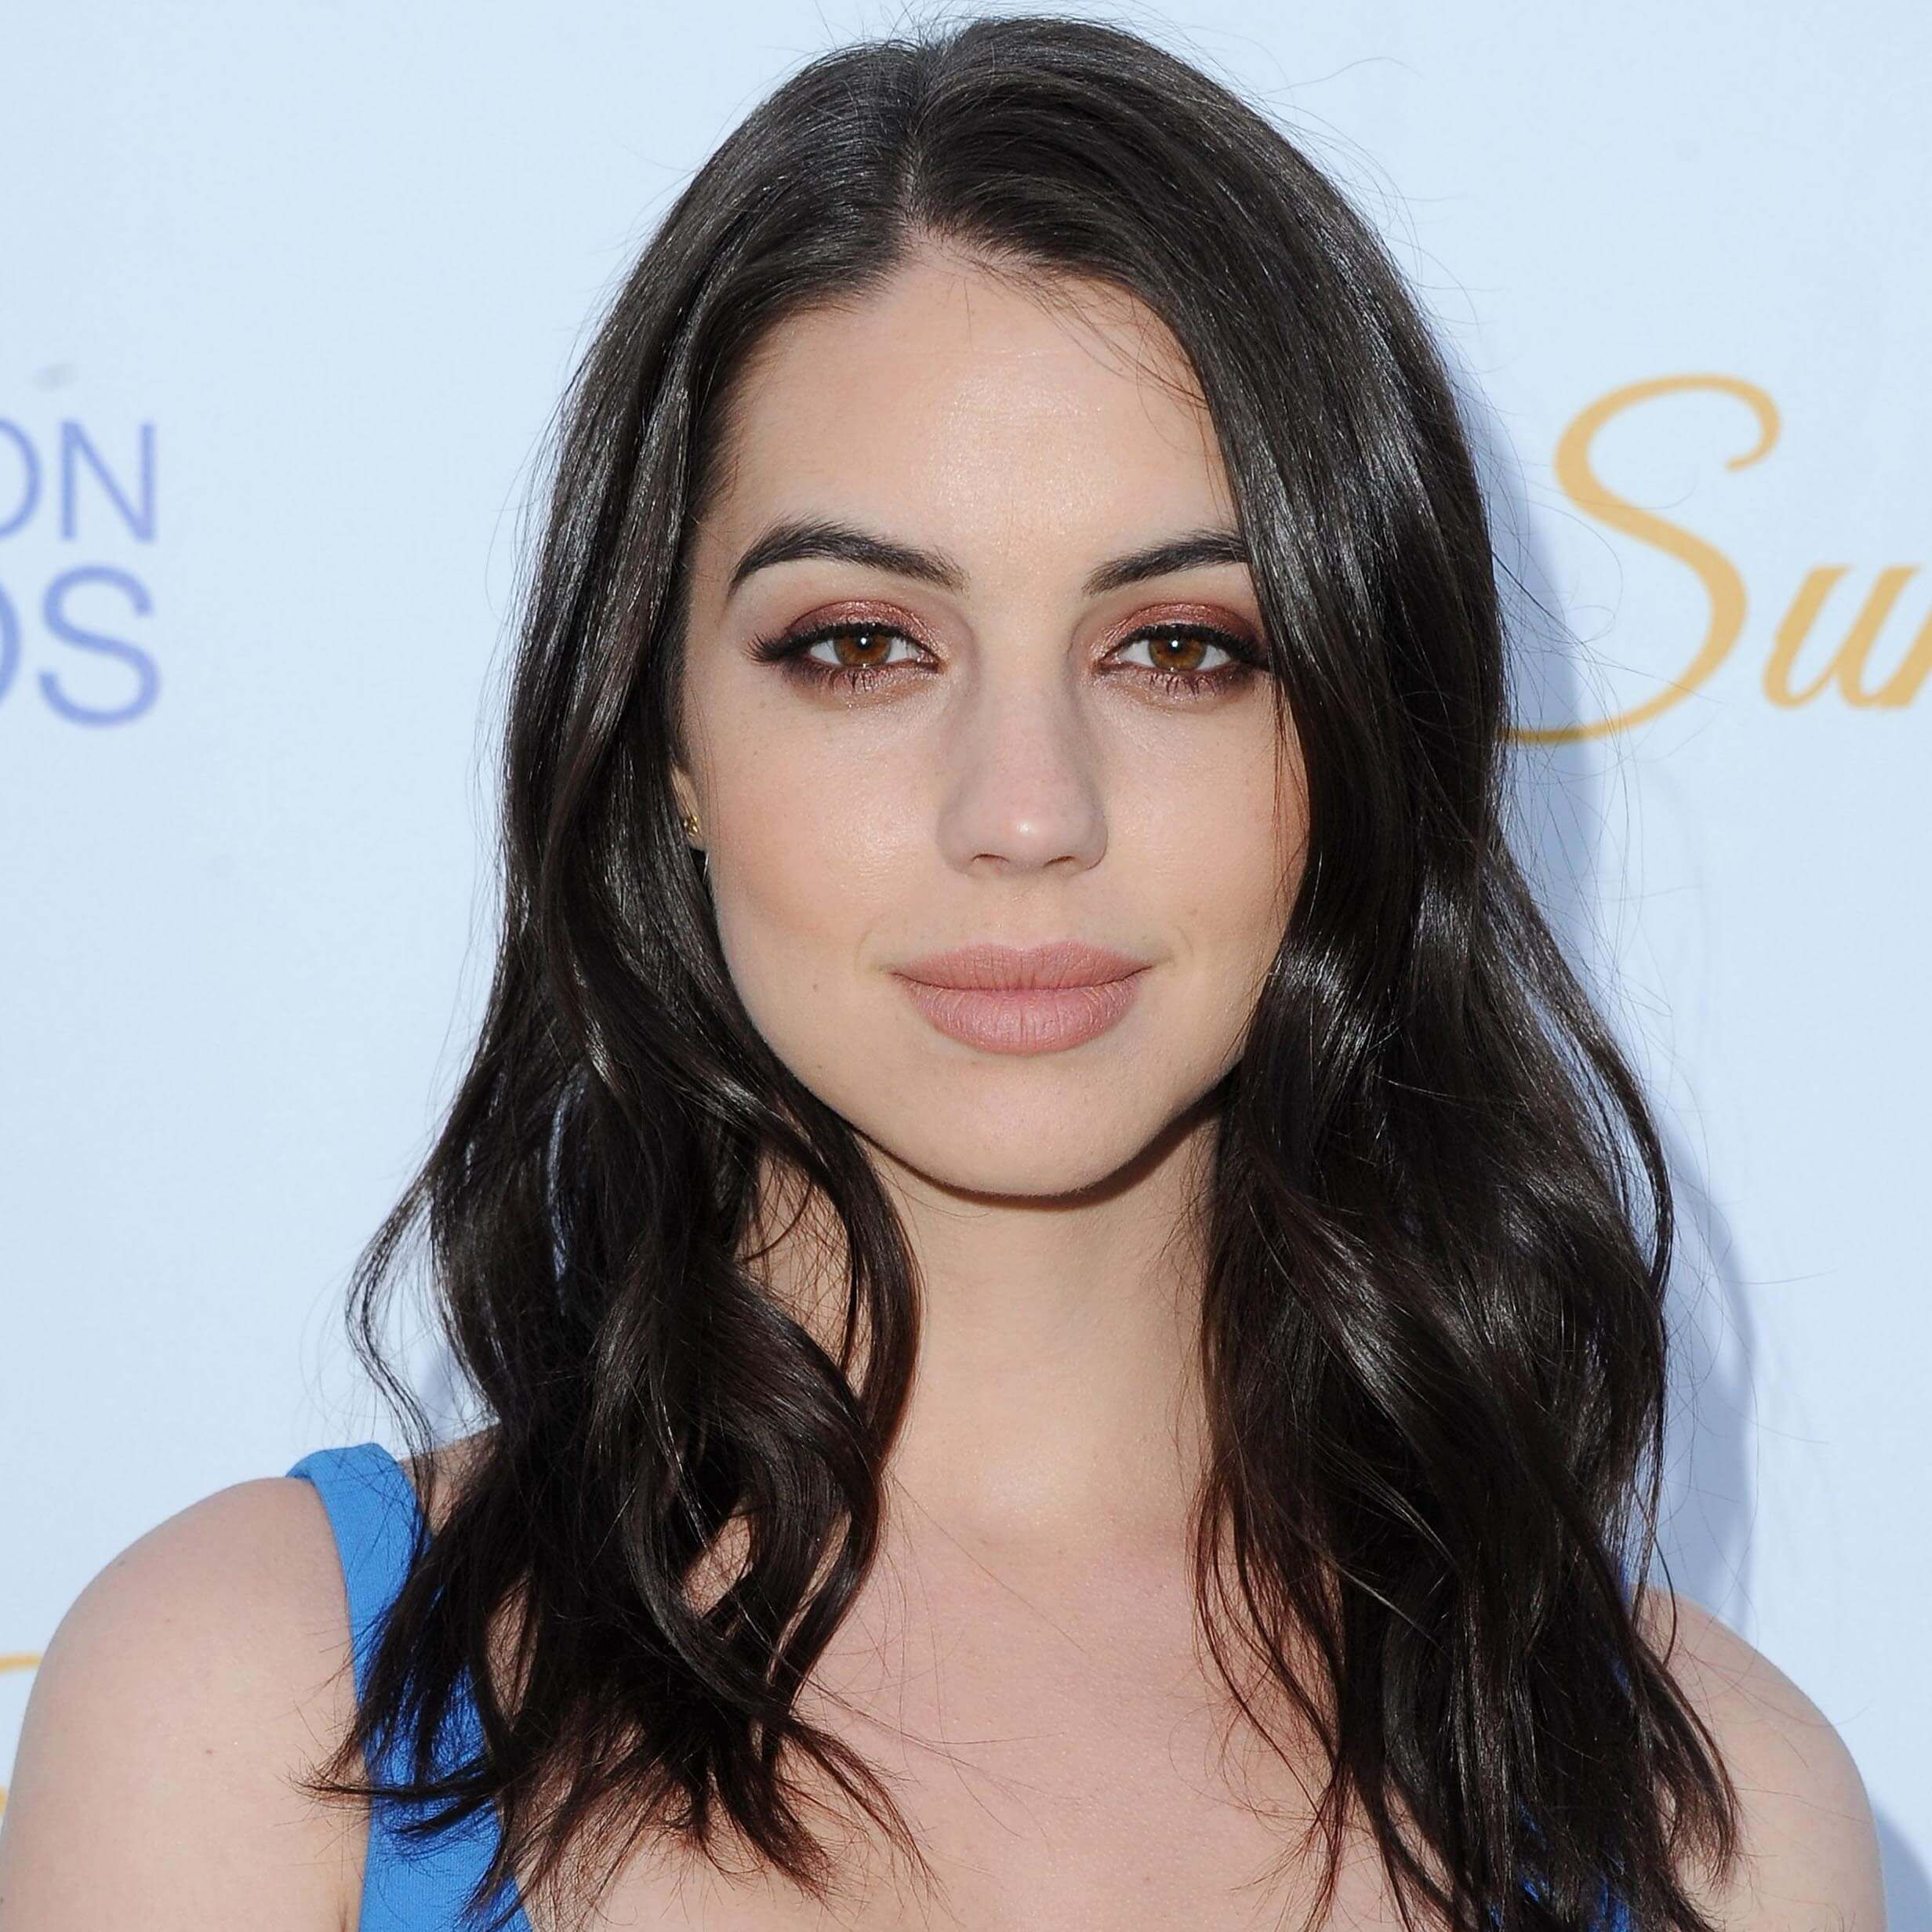 Pin by EricJohn Campbell on Adelaide Kane in 2020